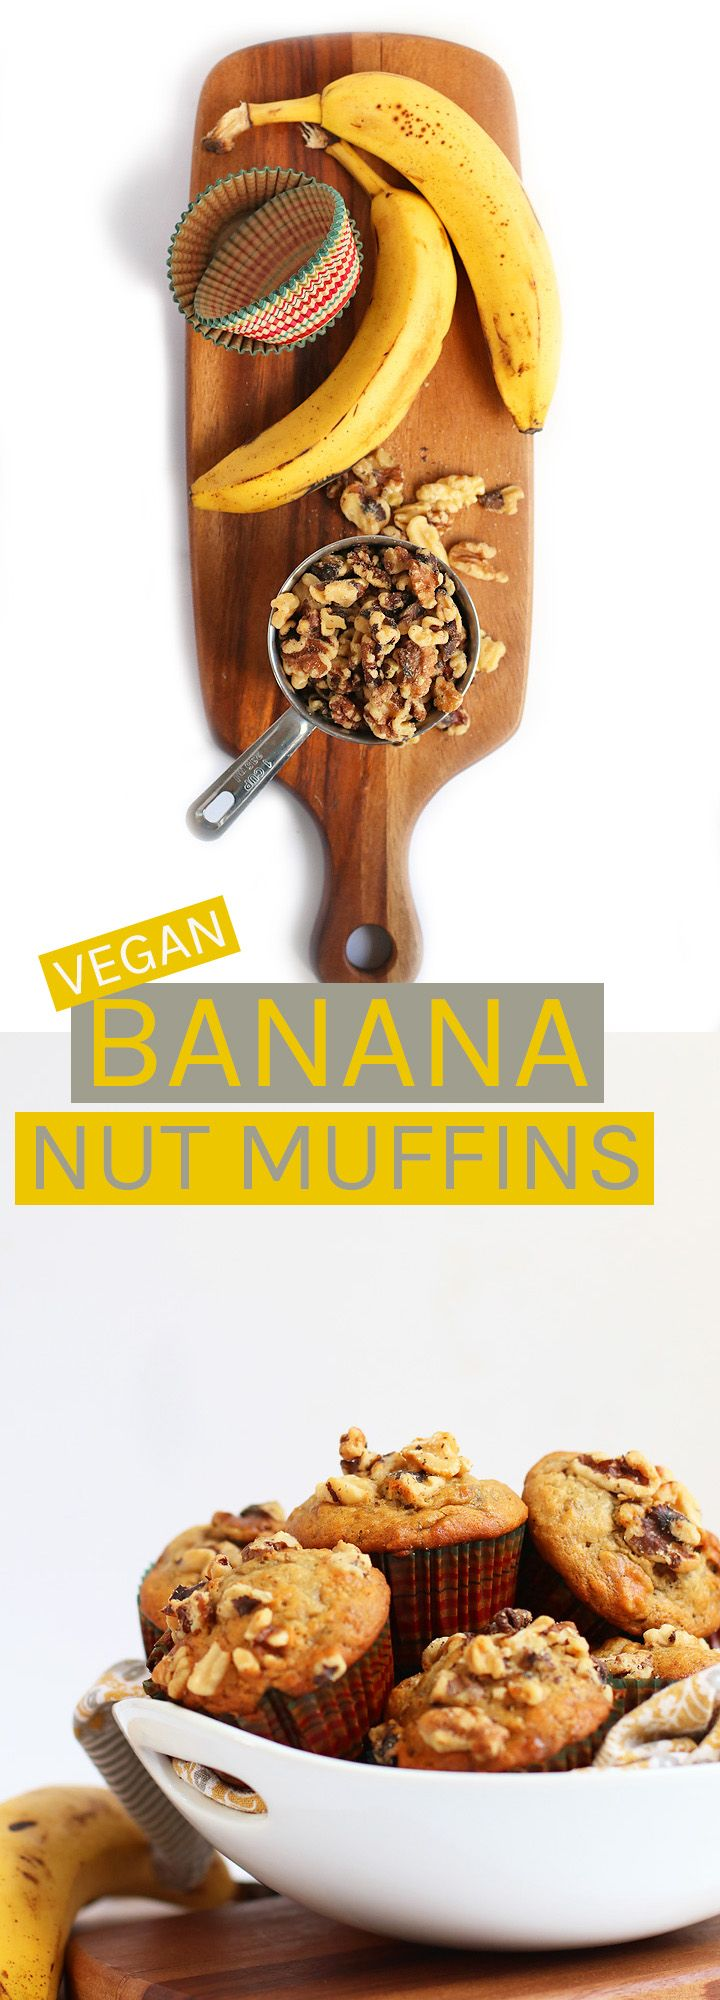 Wake up with these perfectly spiced and incredibly moist vegan Banana Nut Muffins.